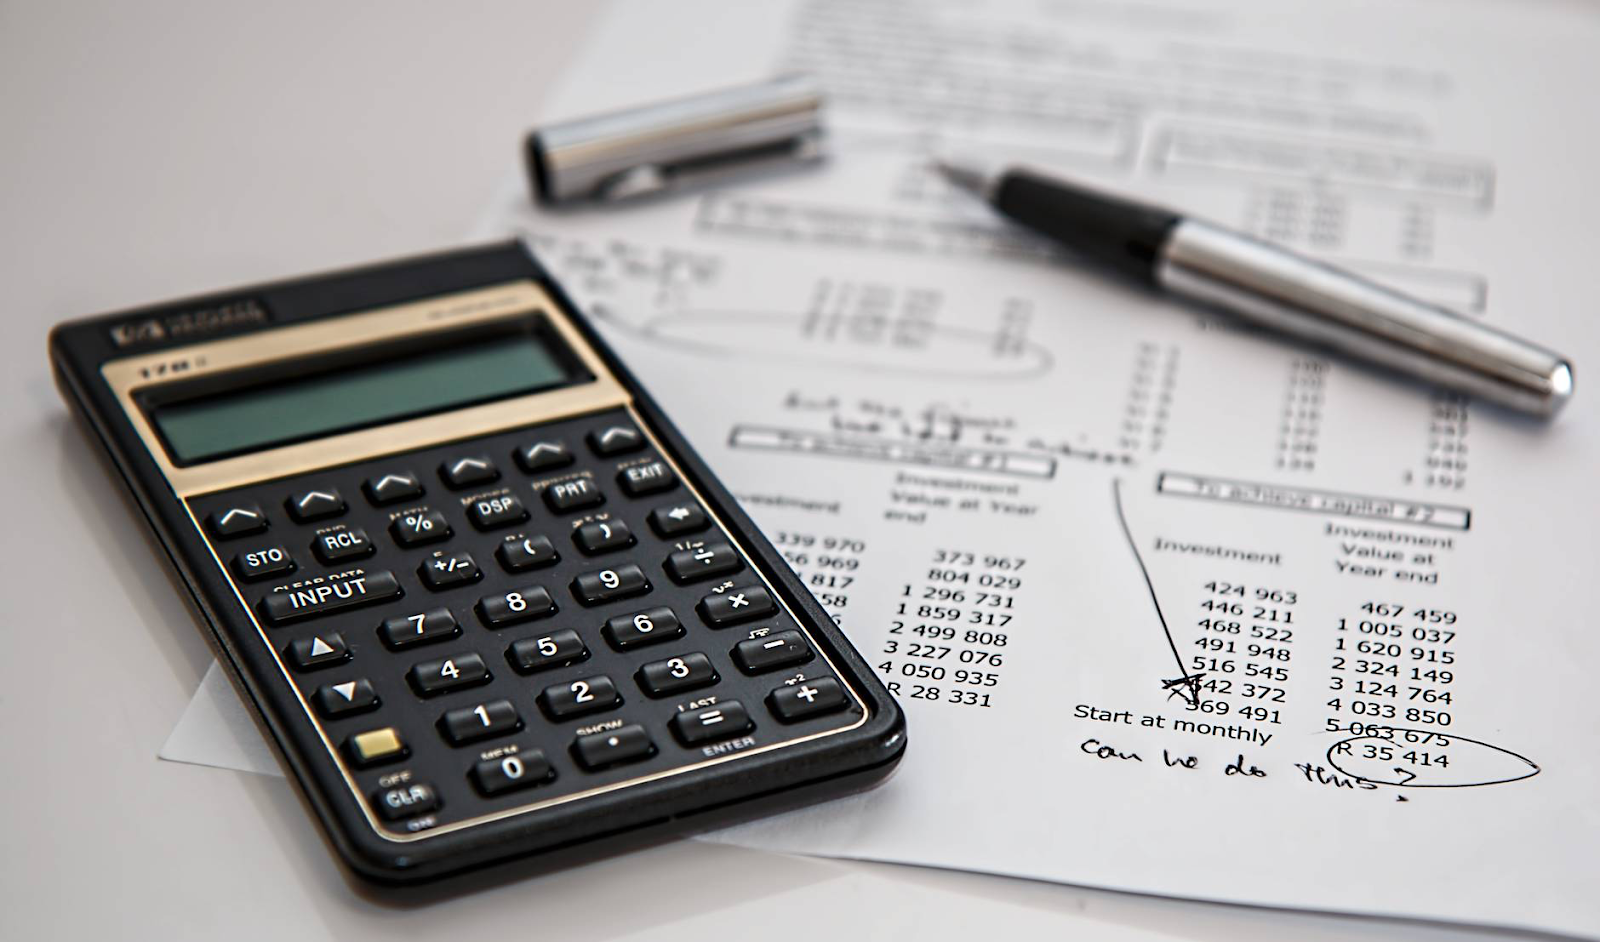 Calculator and financial statements